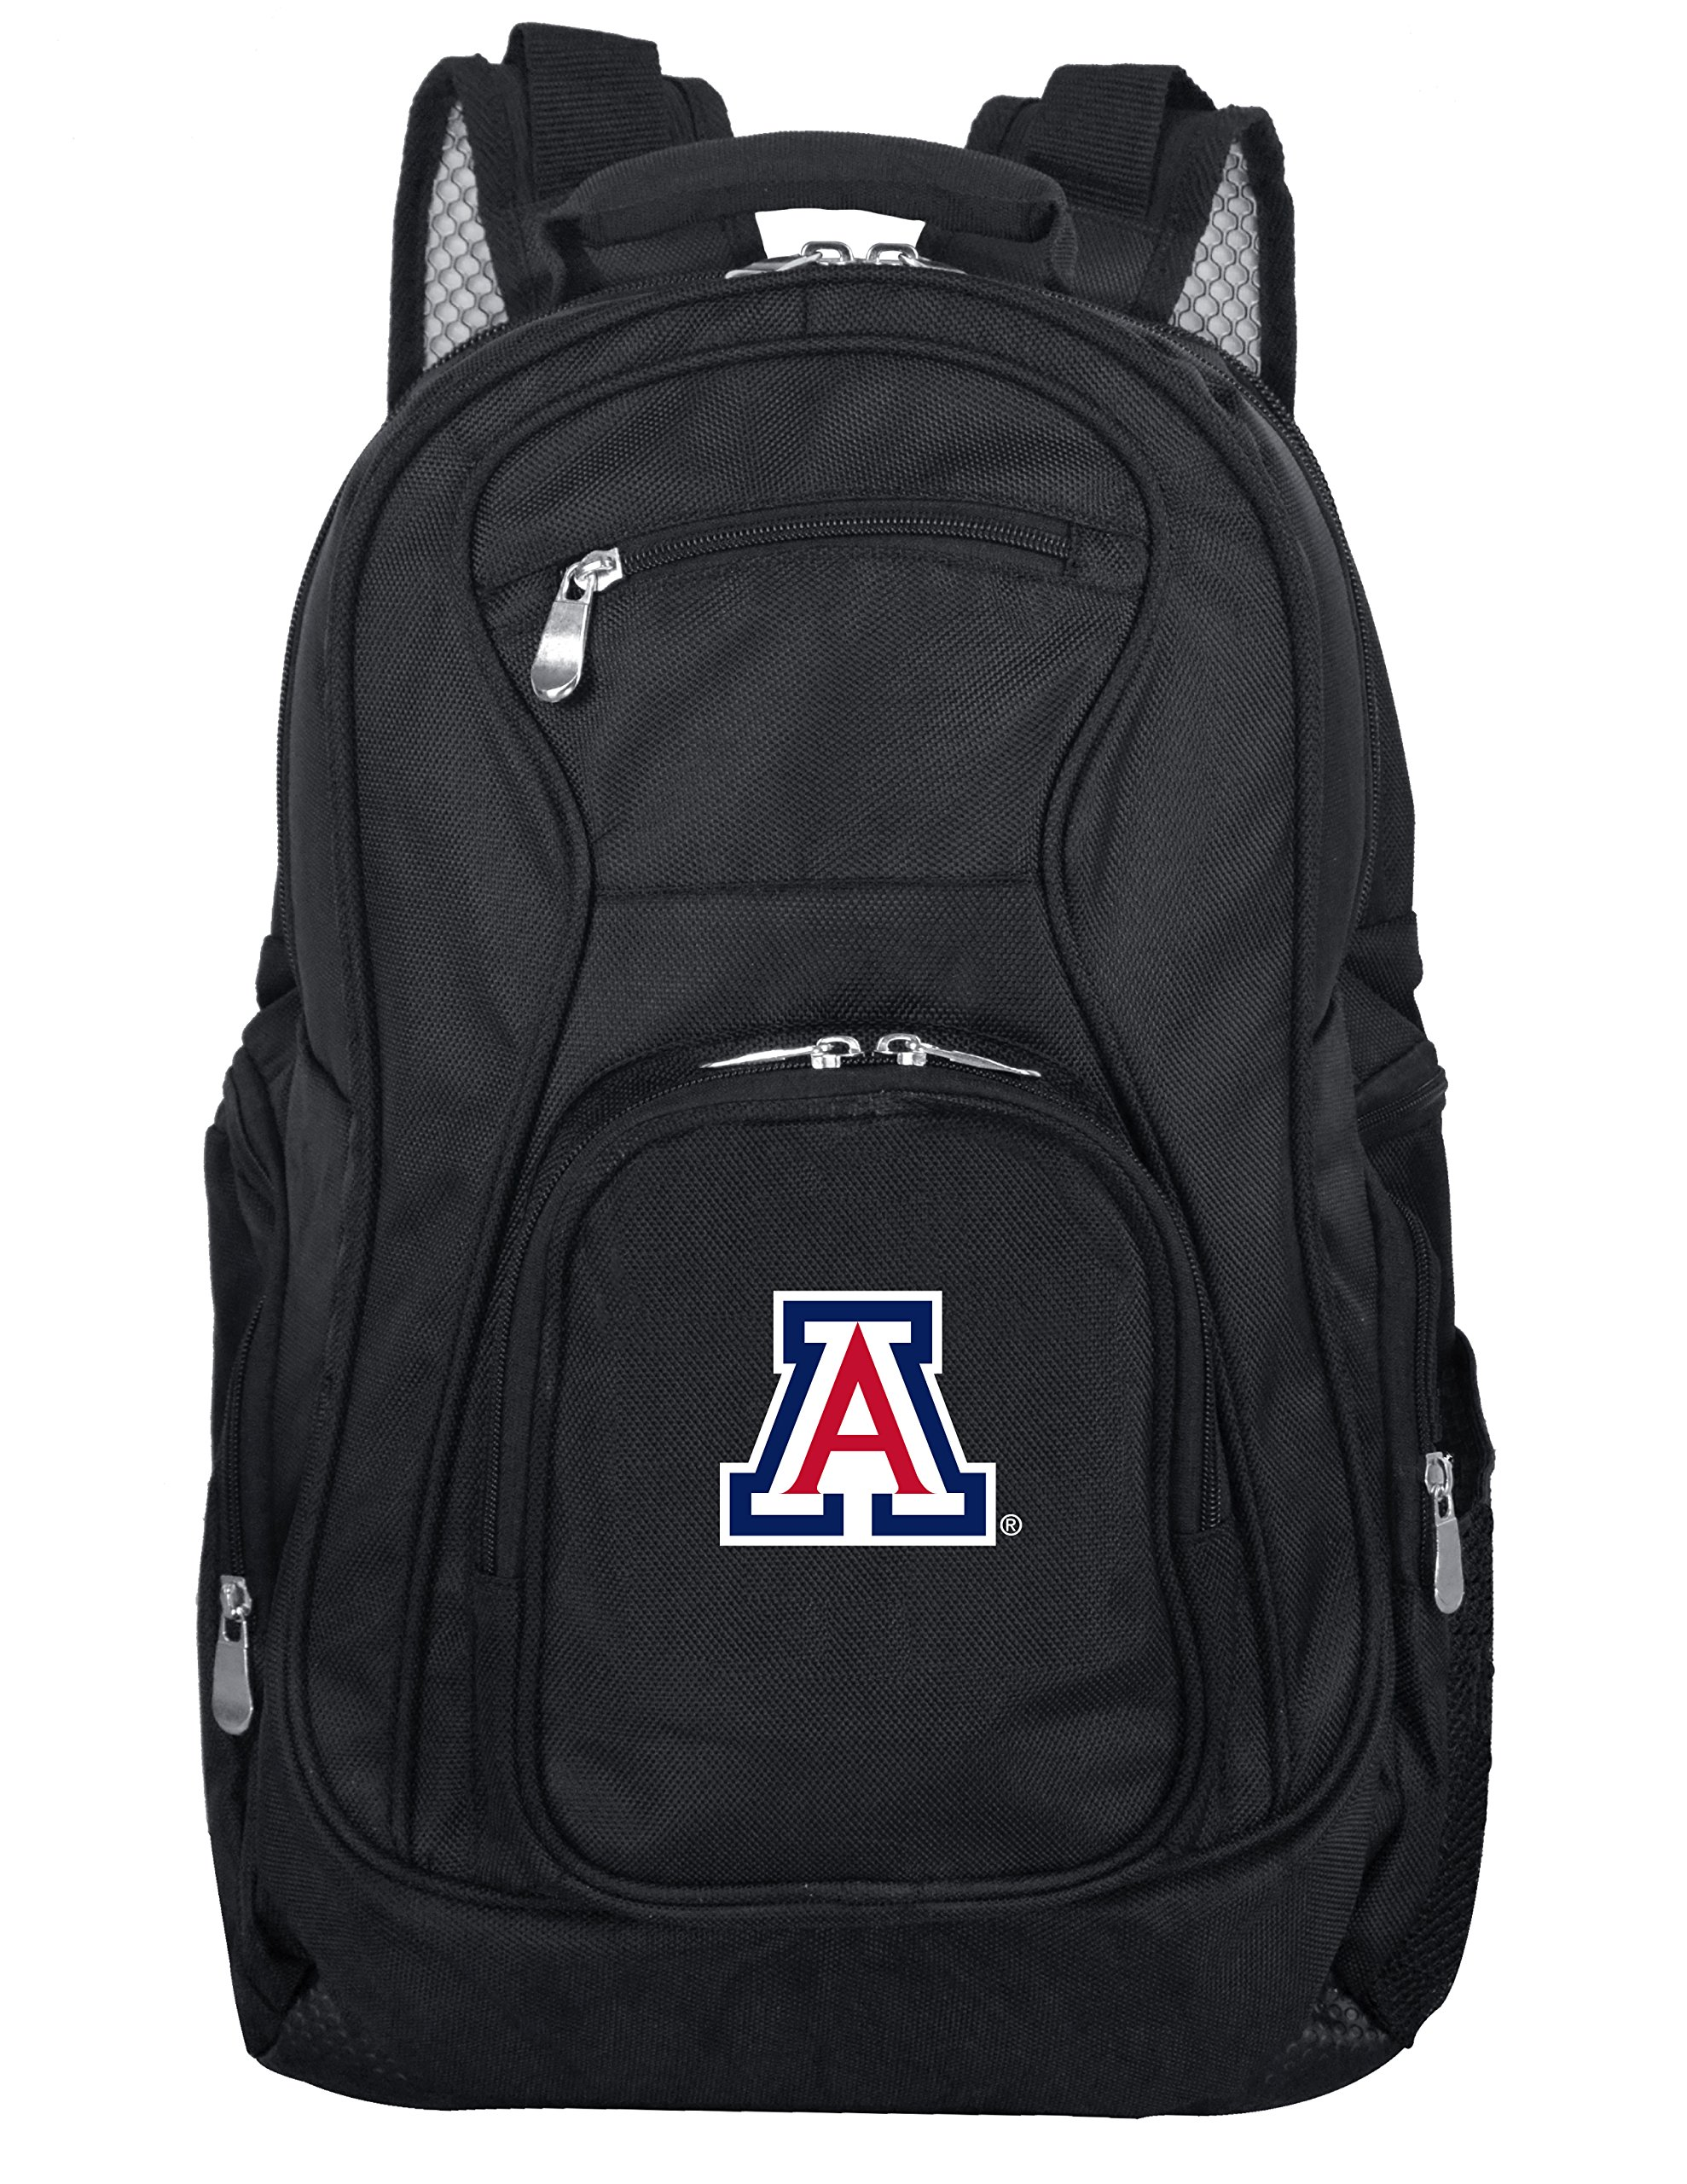 Denco NCAA Arizona Wildcats Voyager Laptop Backpack, 19-inches, Black